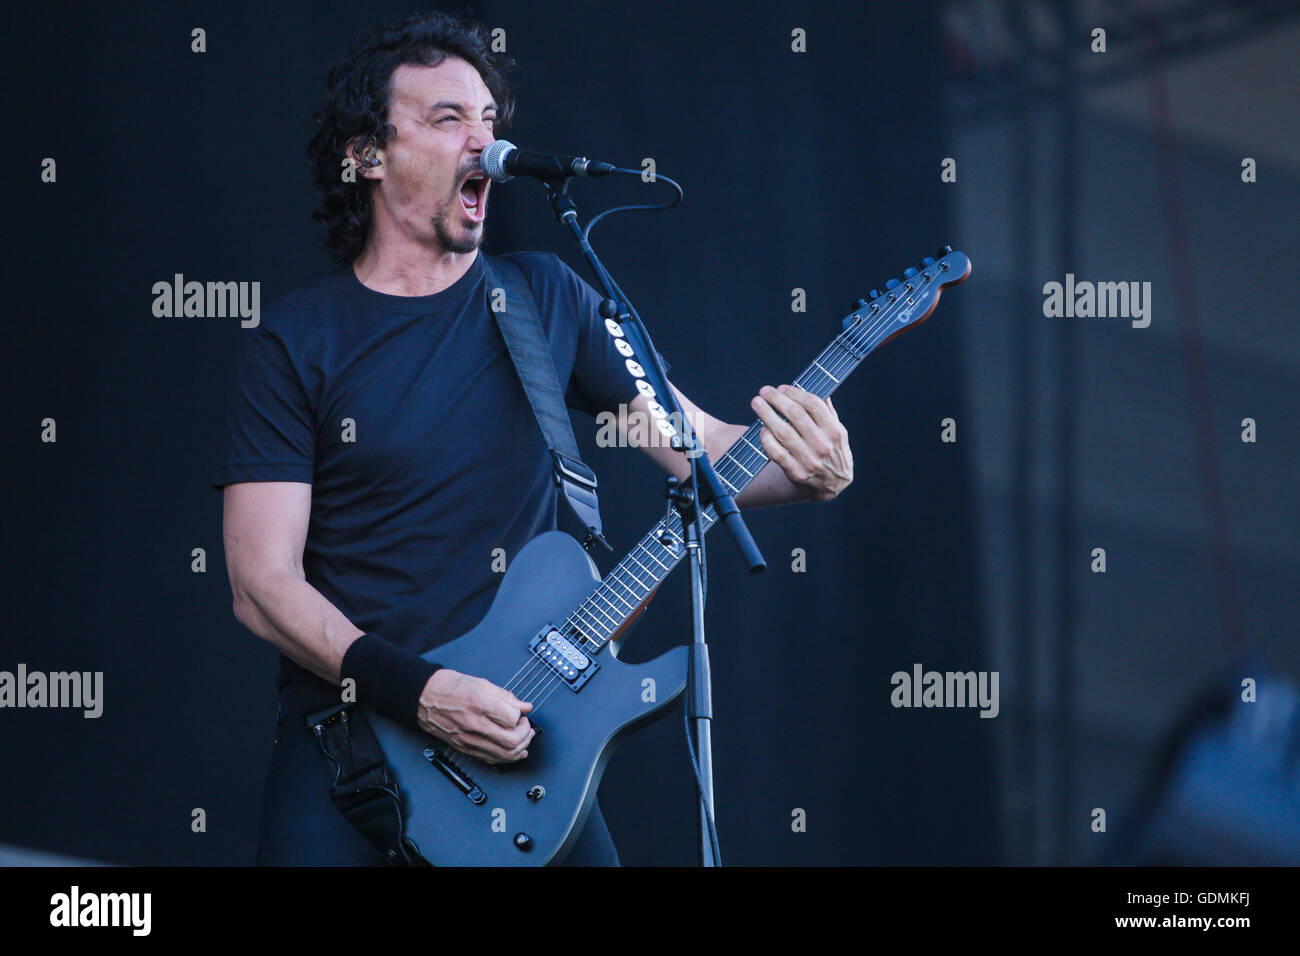 Gojira performs at the Festival d'ete de Quebec in Quebec city Sunday July 17, 2016. - Stock Image